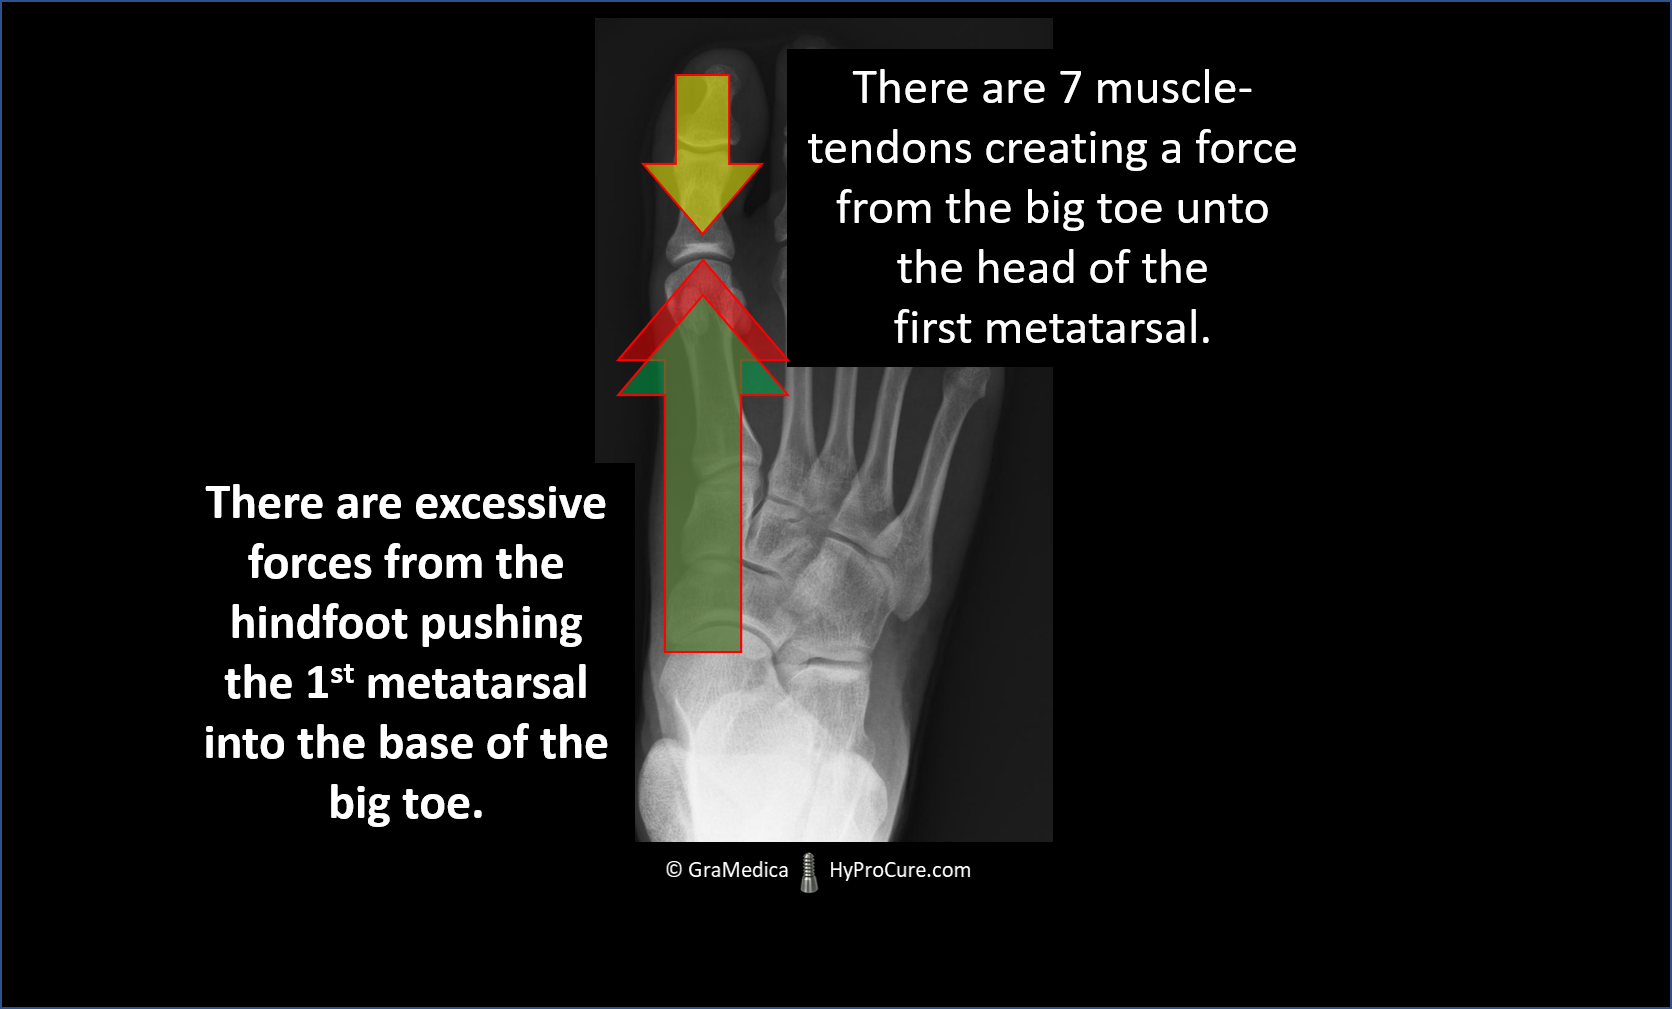 The head of the 1st metatarsal is jamming into the base of the big toe from the excessive ankle bone motion.